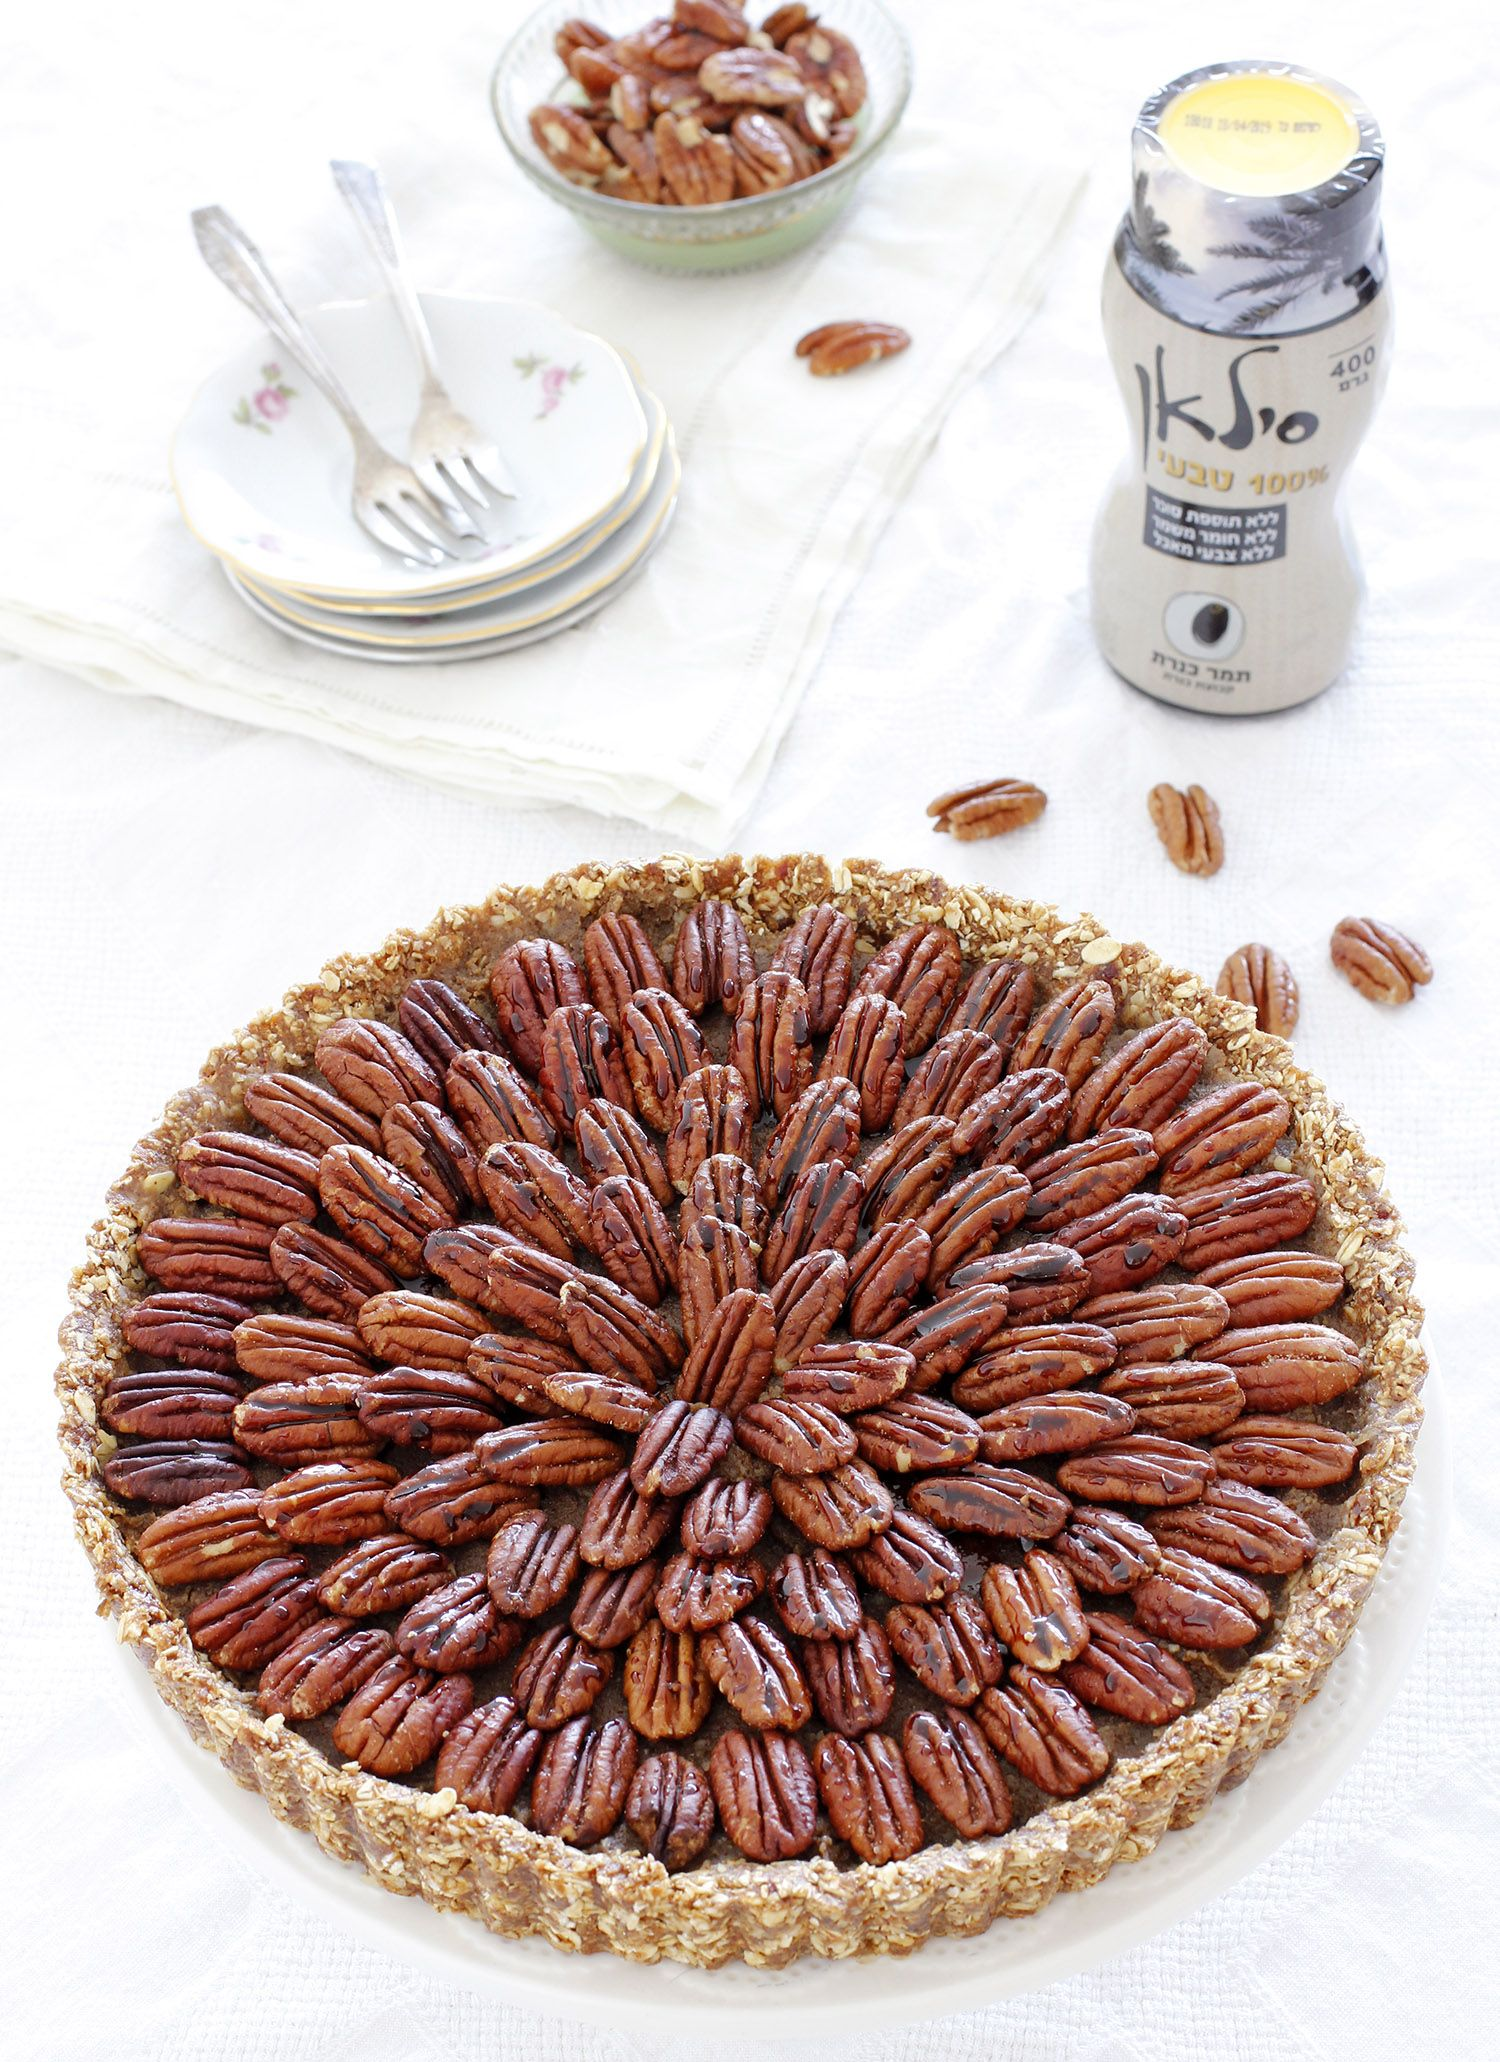 No Bake Vegan Pecan Pie with Date Syrup